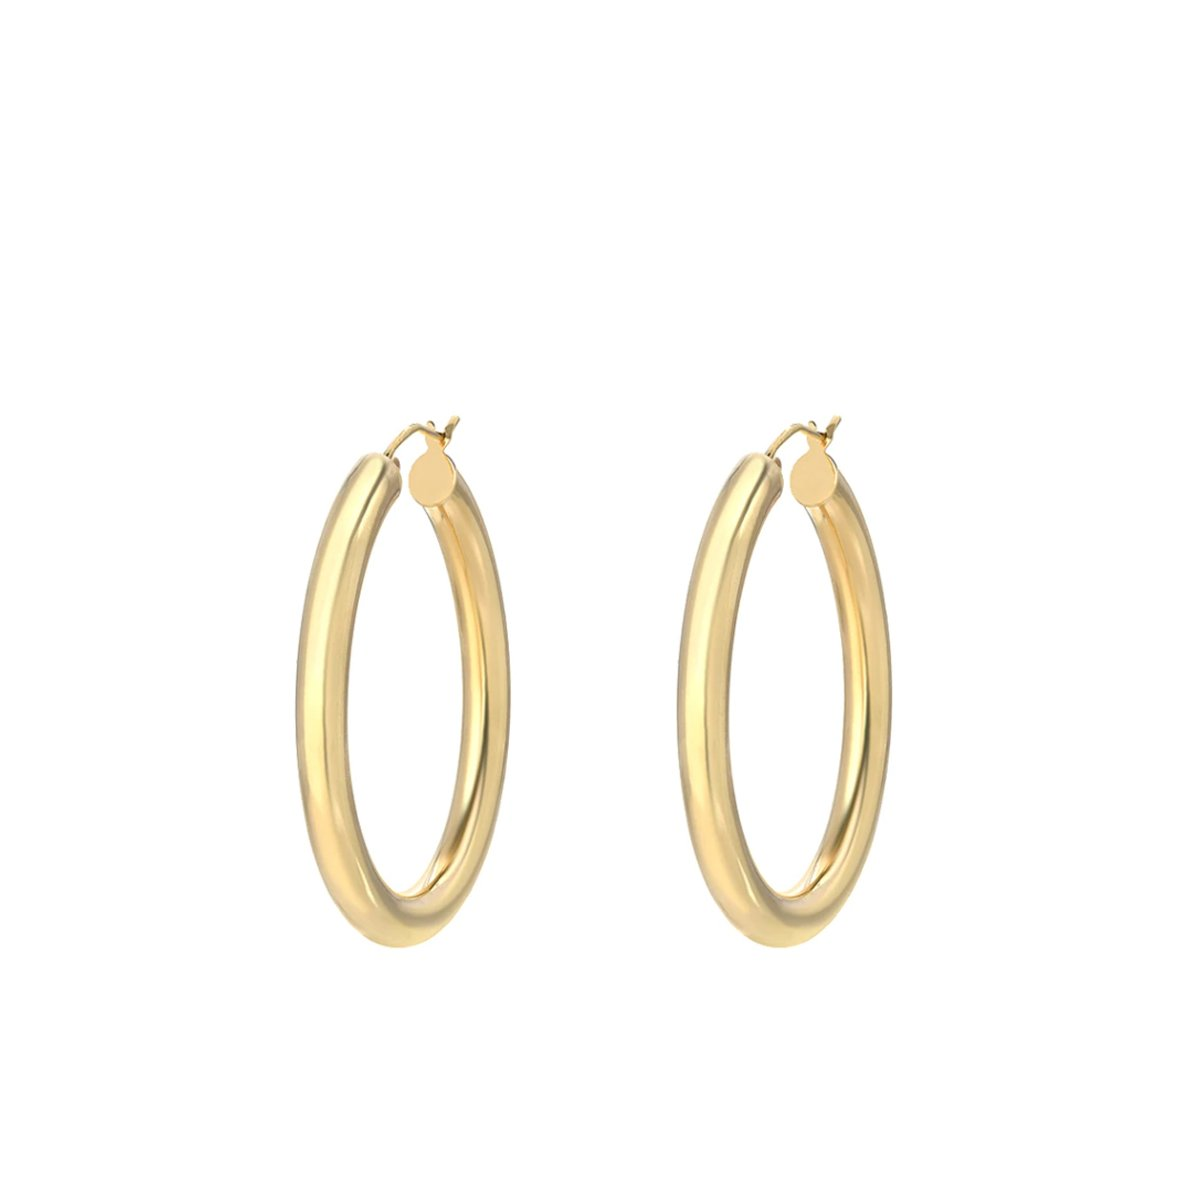 "Classic 1"" Round Hoop Earringin 18K Gold Plated"